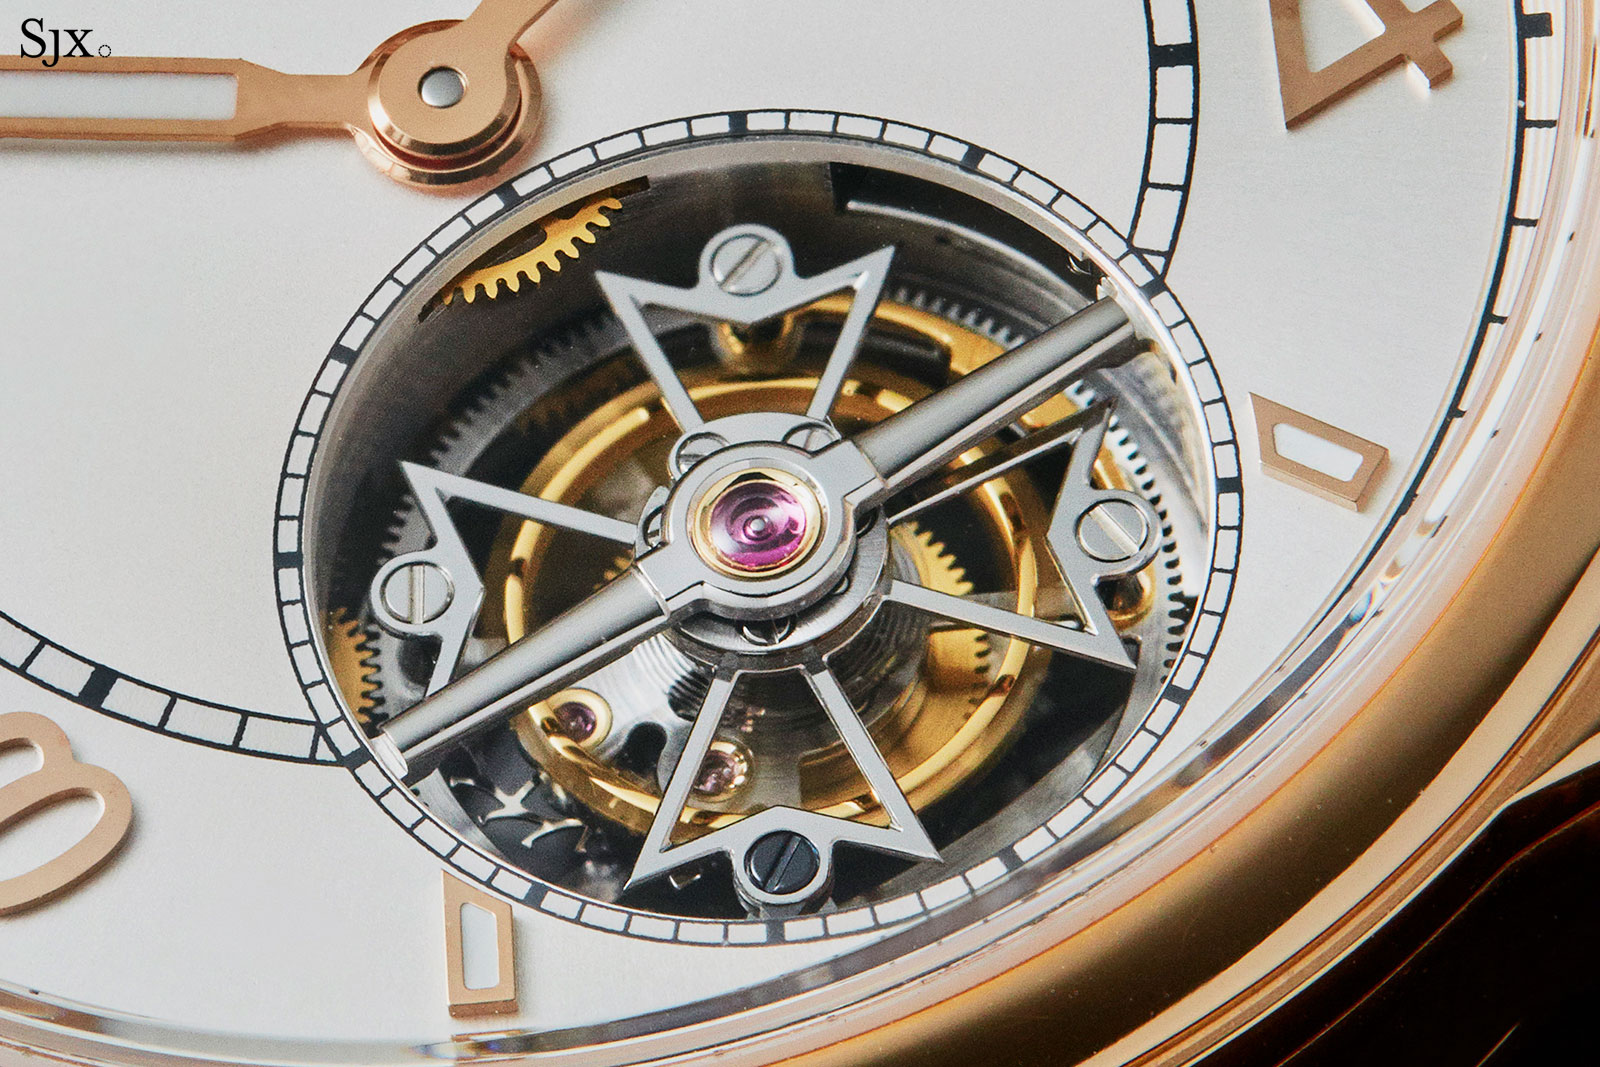 Vacheron Constantin FiftySix Tourbillon 7